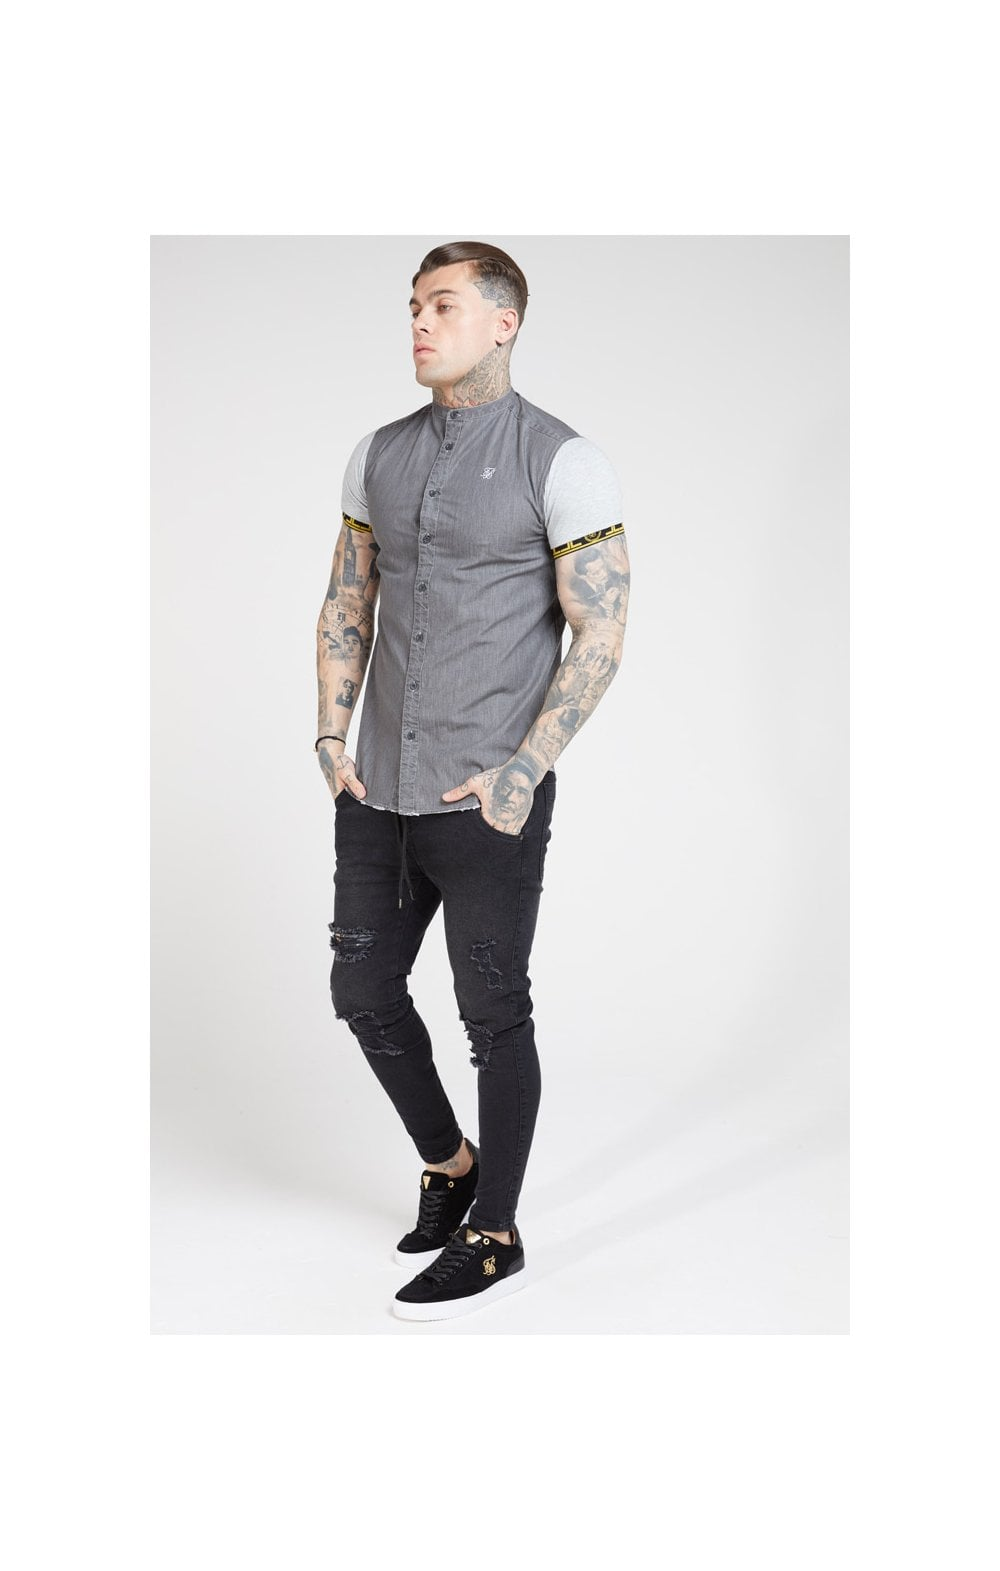 SikSilk S/S Denim Shirt – Grey (3)